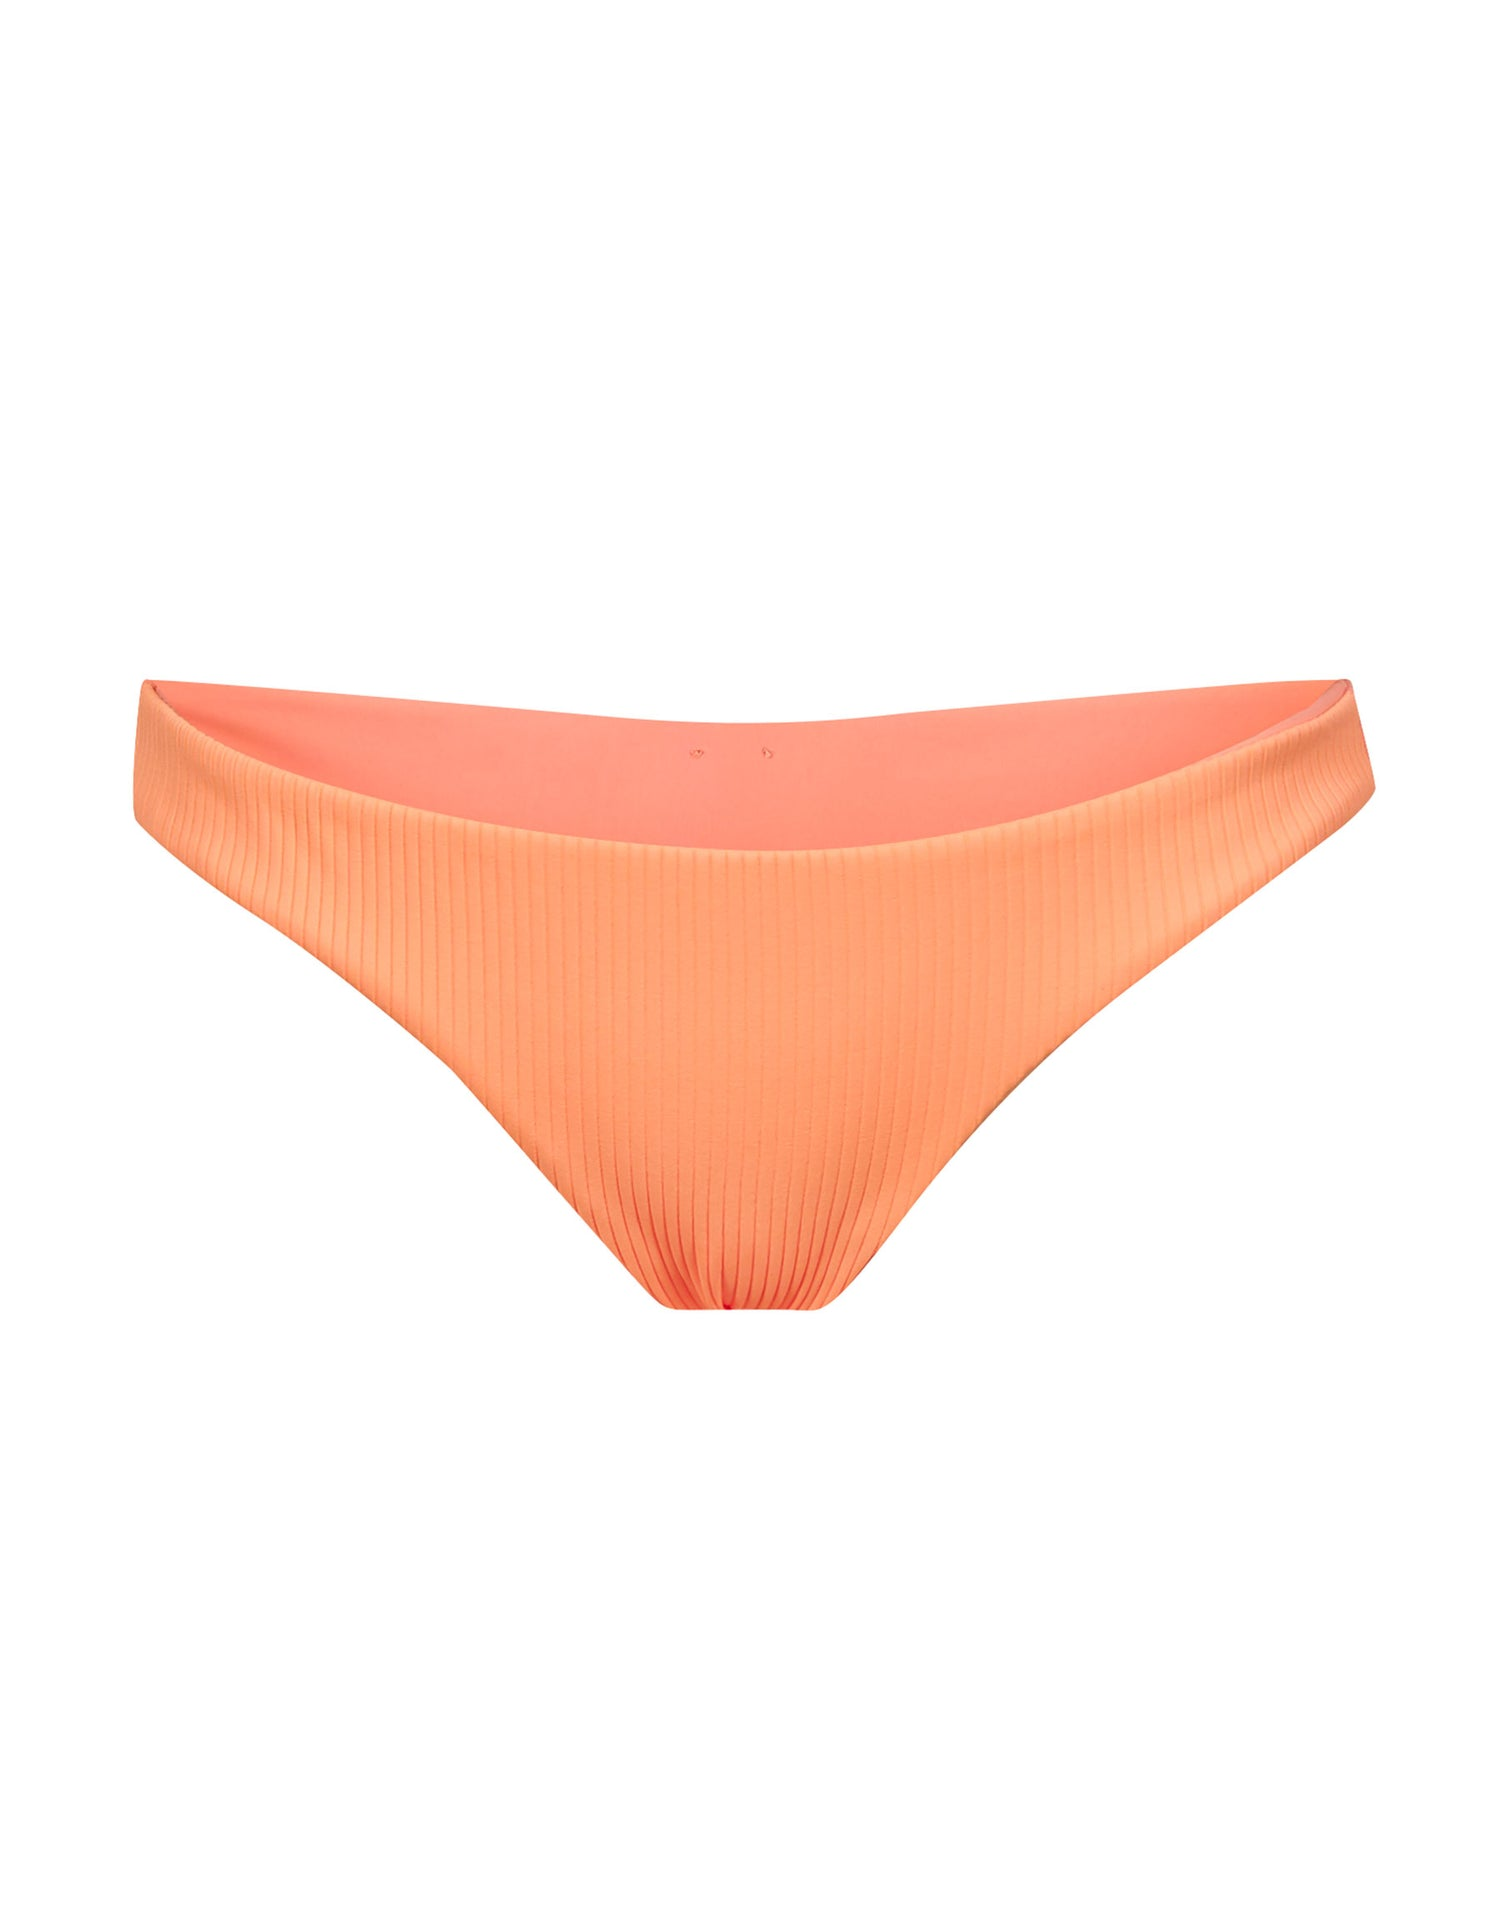 Angela Skimpy Bikini Bottom in Sorbet - product view